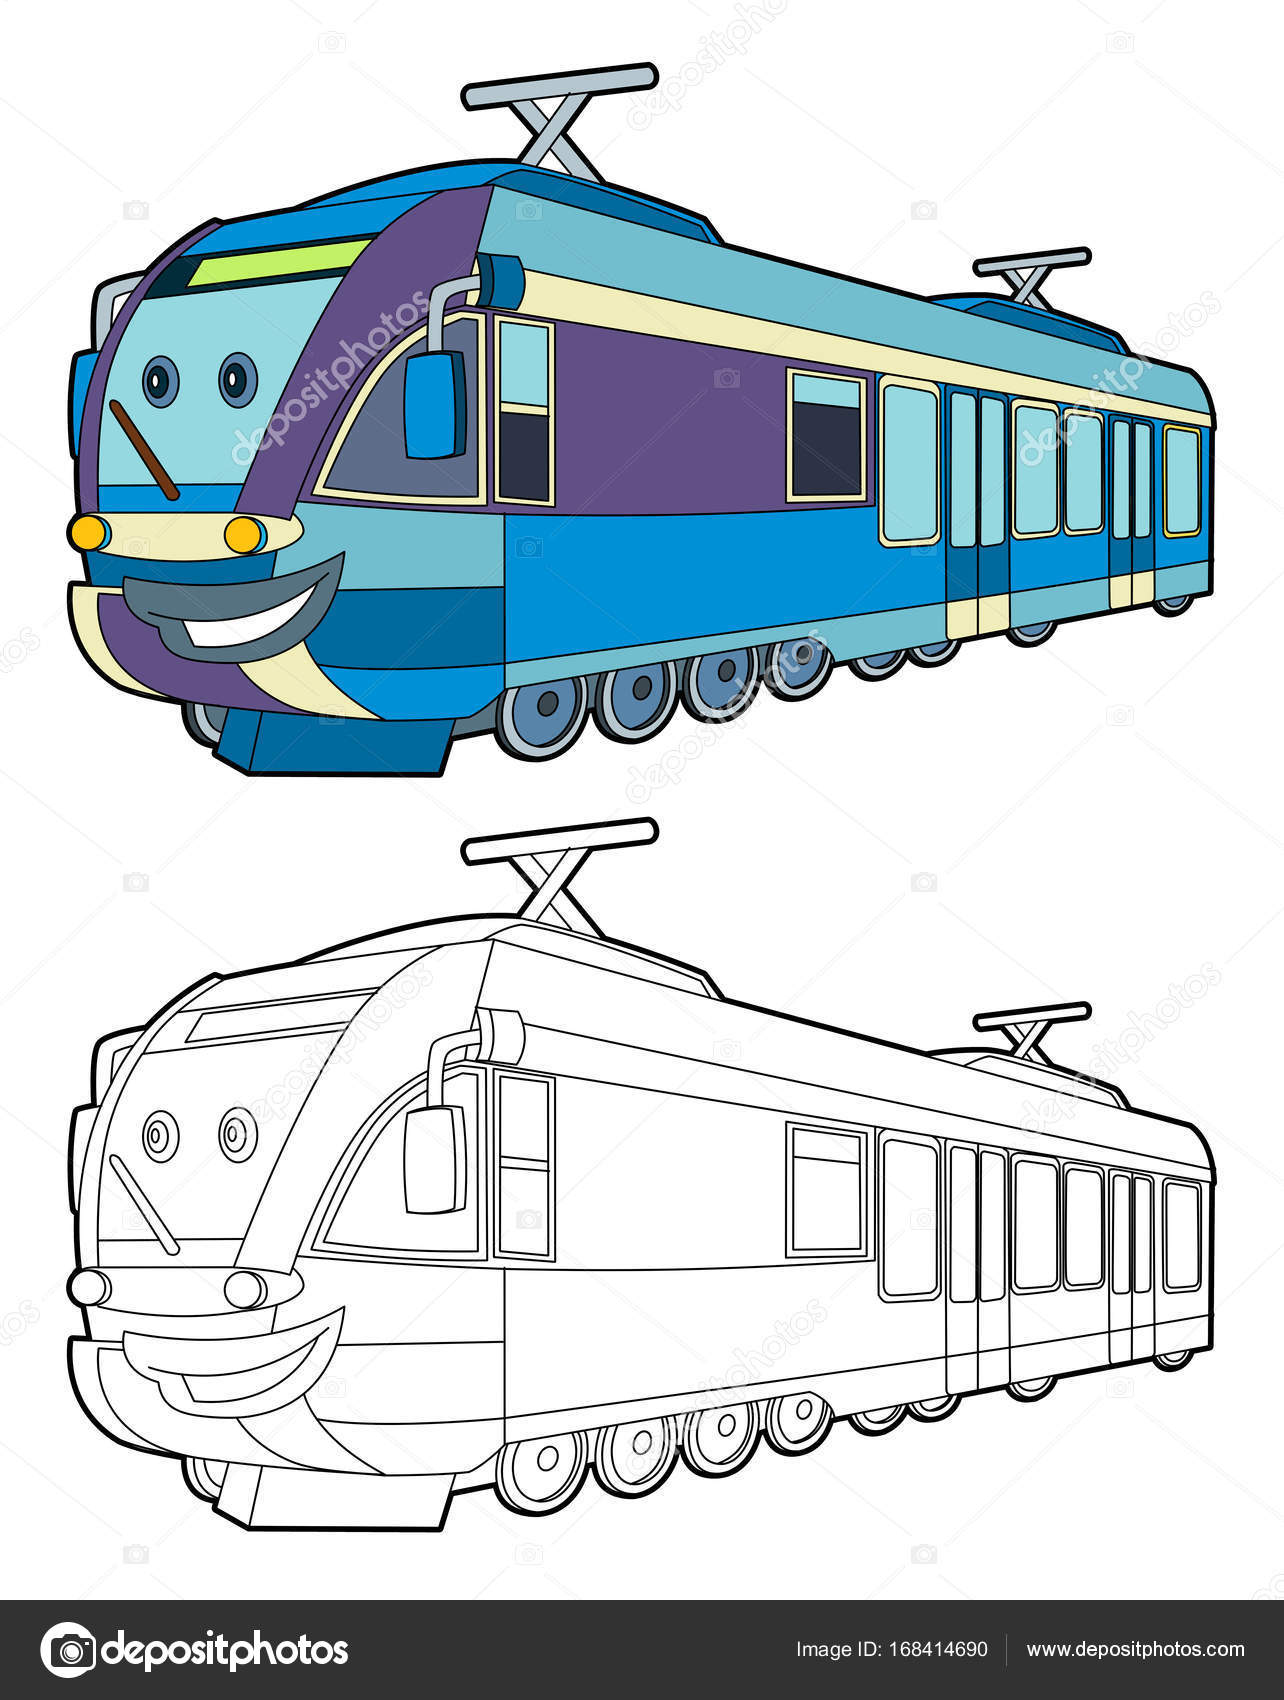 Cartoon Fast Electric Train Smiling Coloring Page Illustration